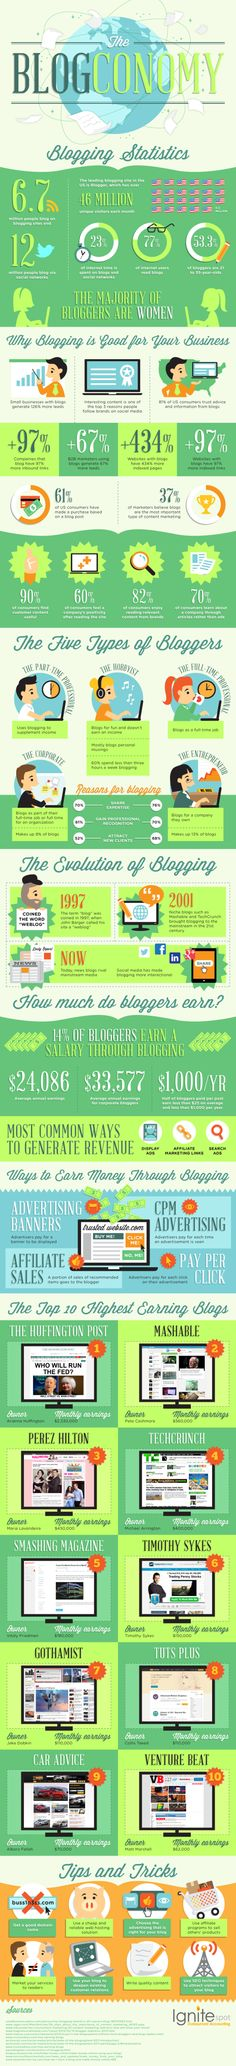 Why businesses should be blogging